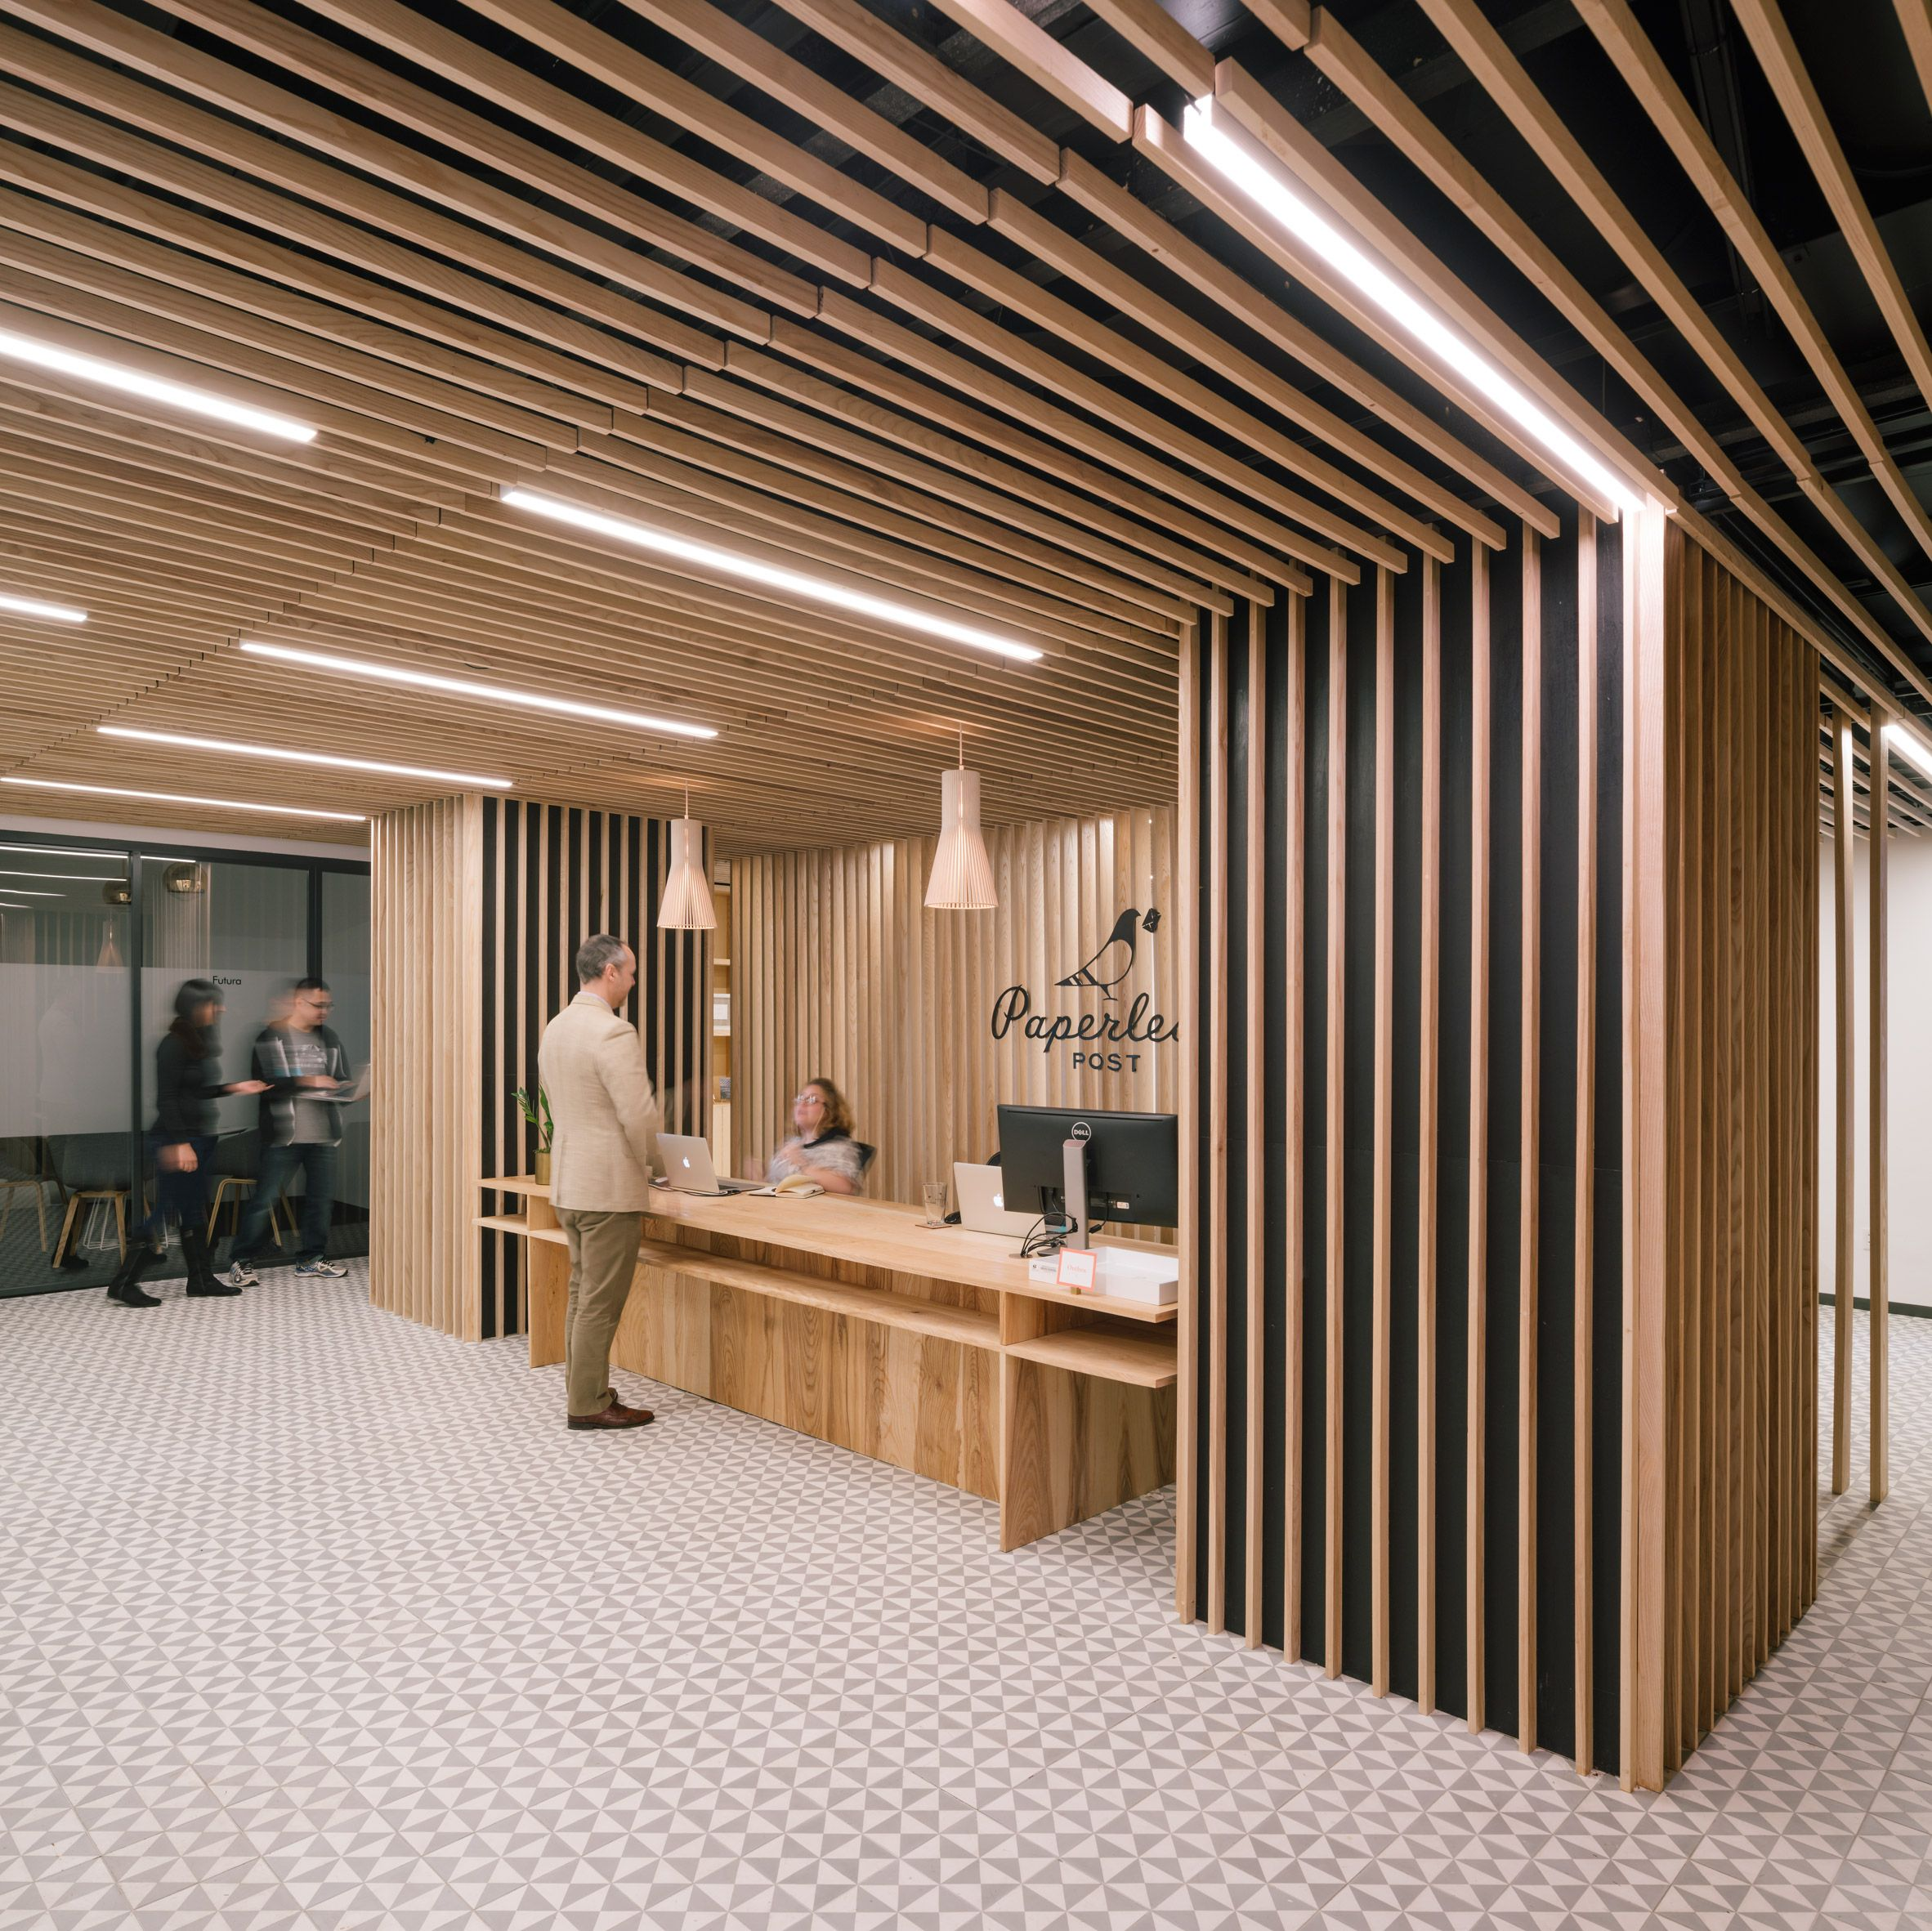 Wooden slats surround reception at Paperless Post's